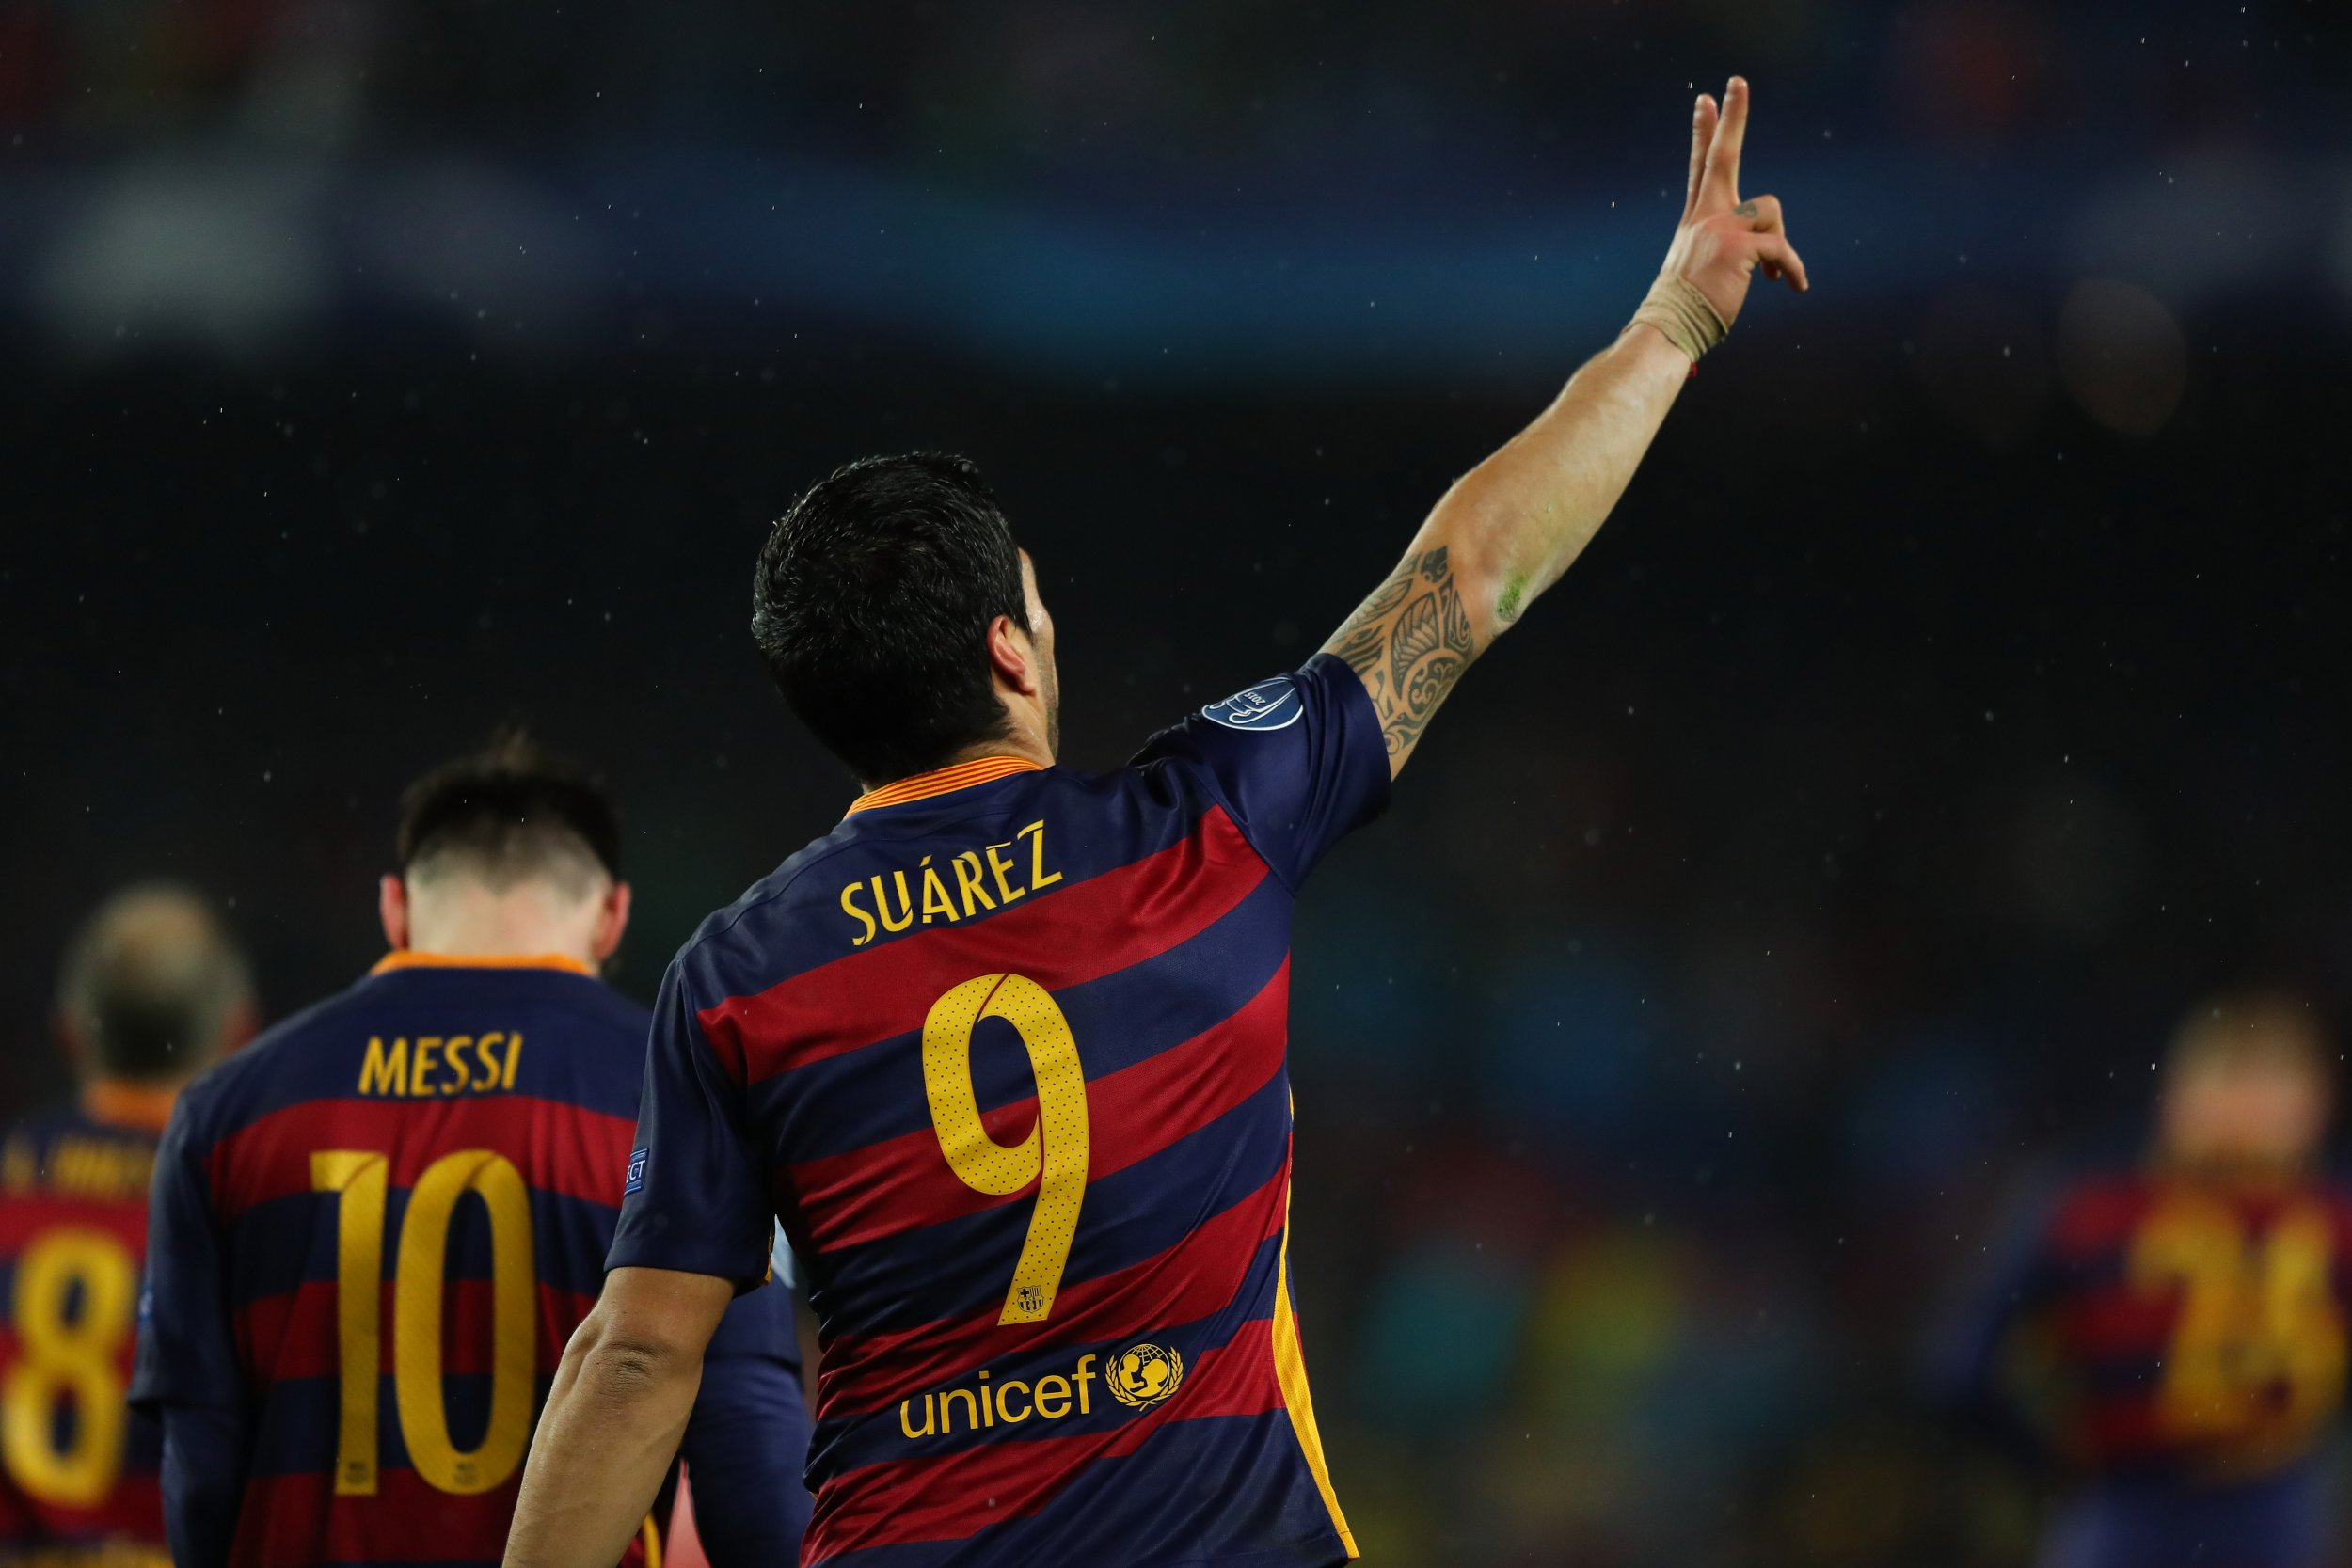 Luis Suarez struck to knock Arsenal from the Champions League on Wednesday night.